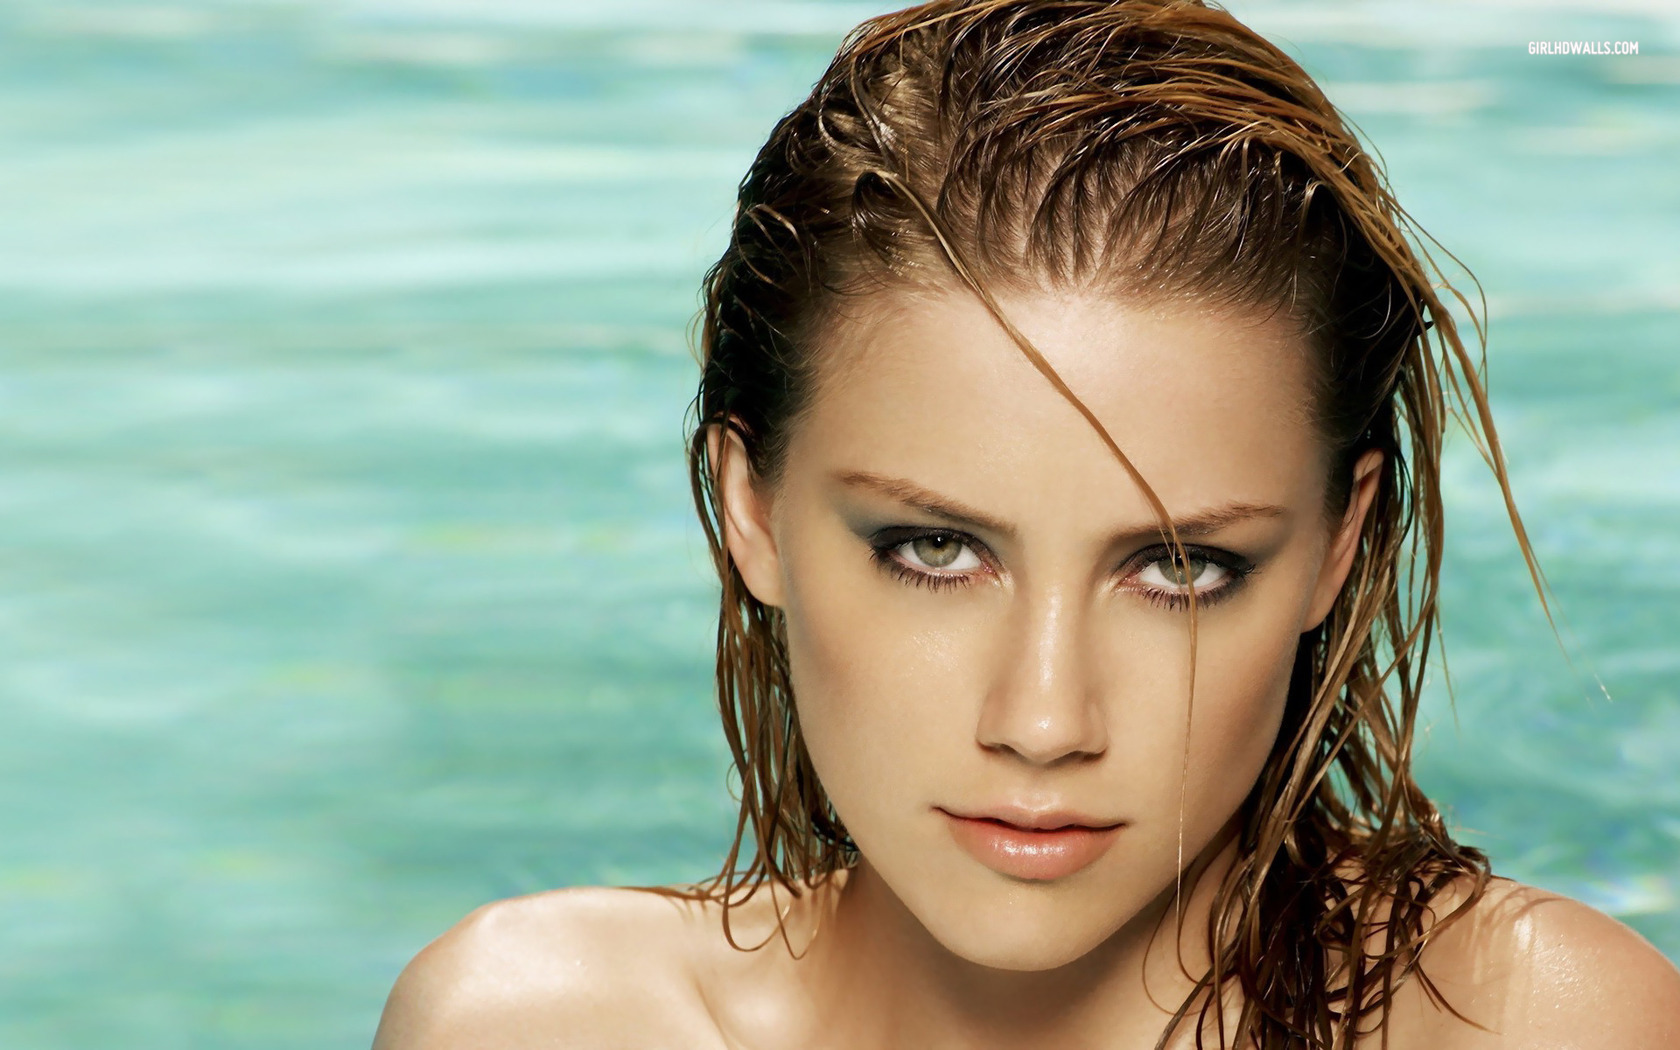 Amber Heard Wallpapers, Pictures, Images Amber Heard